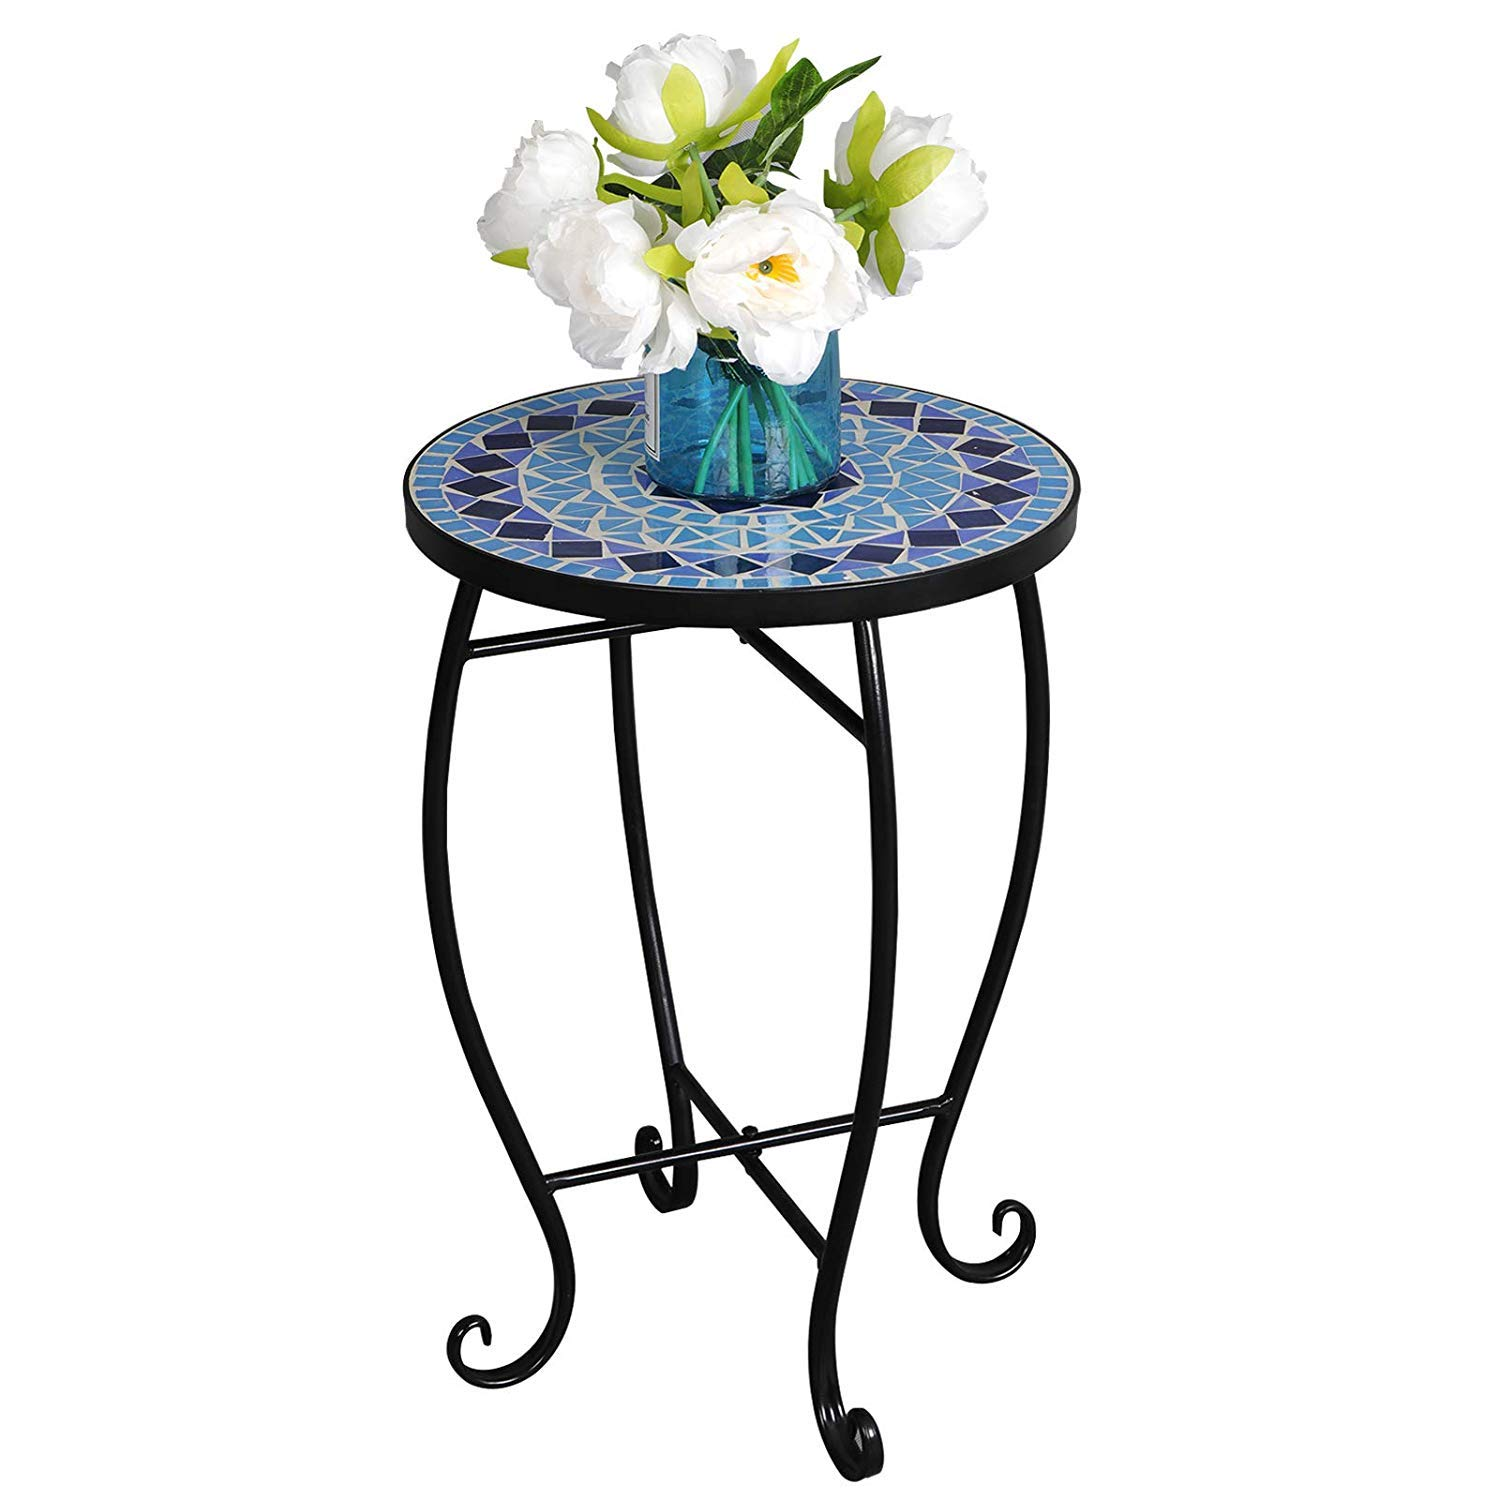 HomGarden Mosaic Round Side Table Plant Stand Floor Flower Pots Rack Planter Holder Porch Balcony Patio Garden Mosaic Tablejust Decor Accent Tables